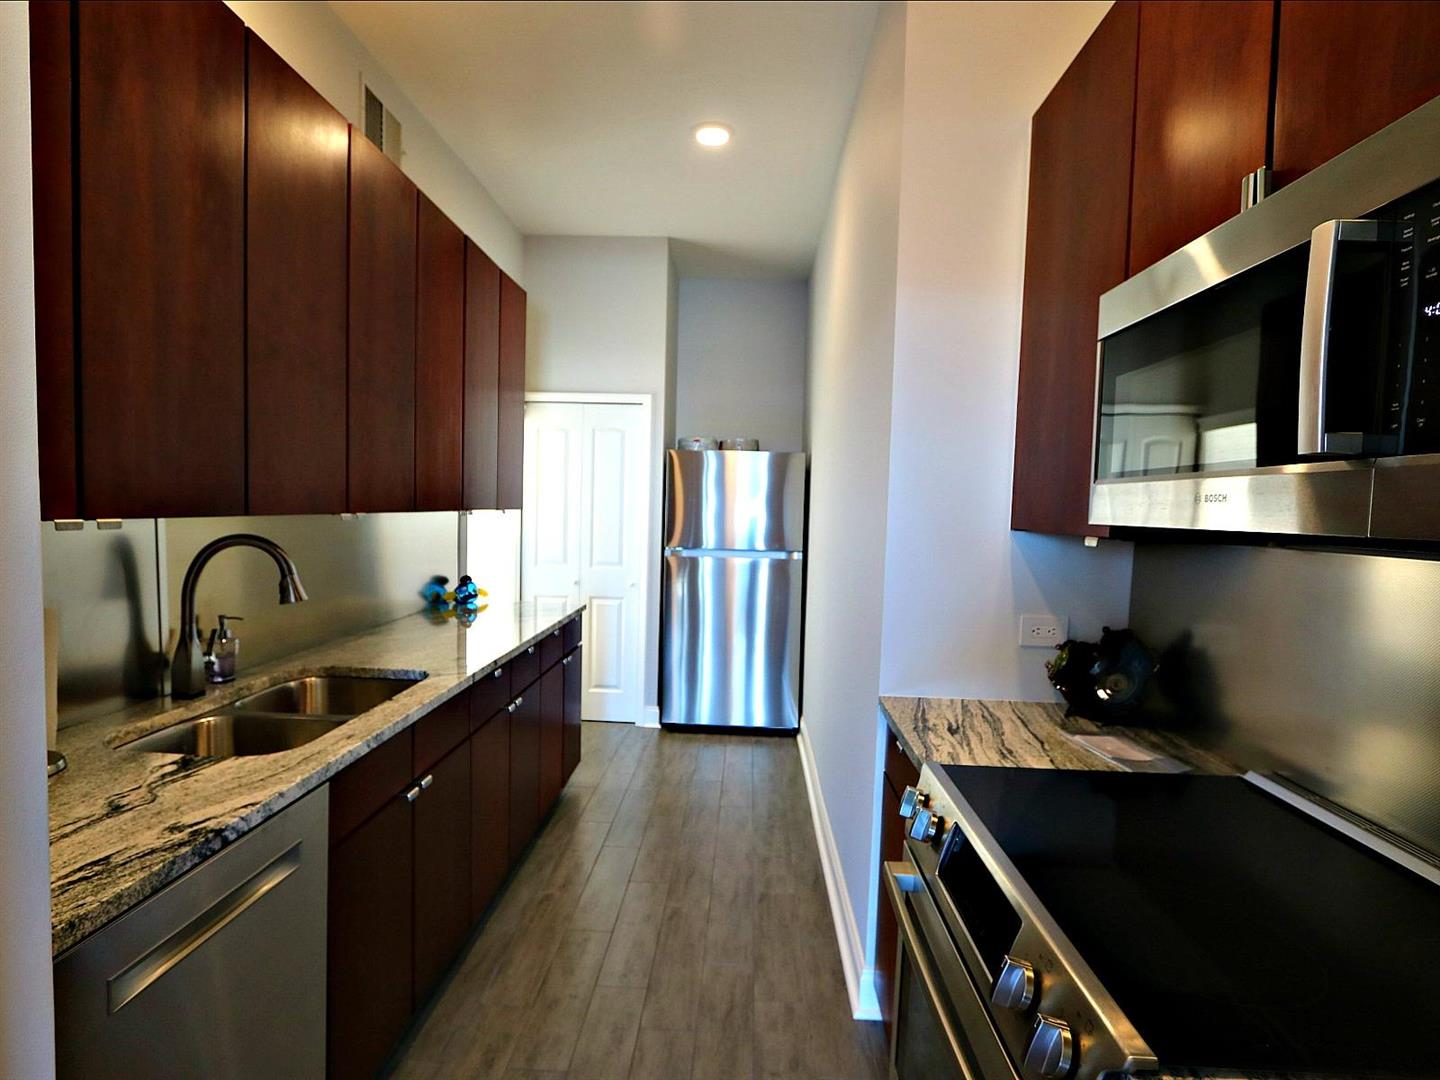 330JuliaSt.CondoPH10Kitchen1.jpg